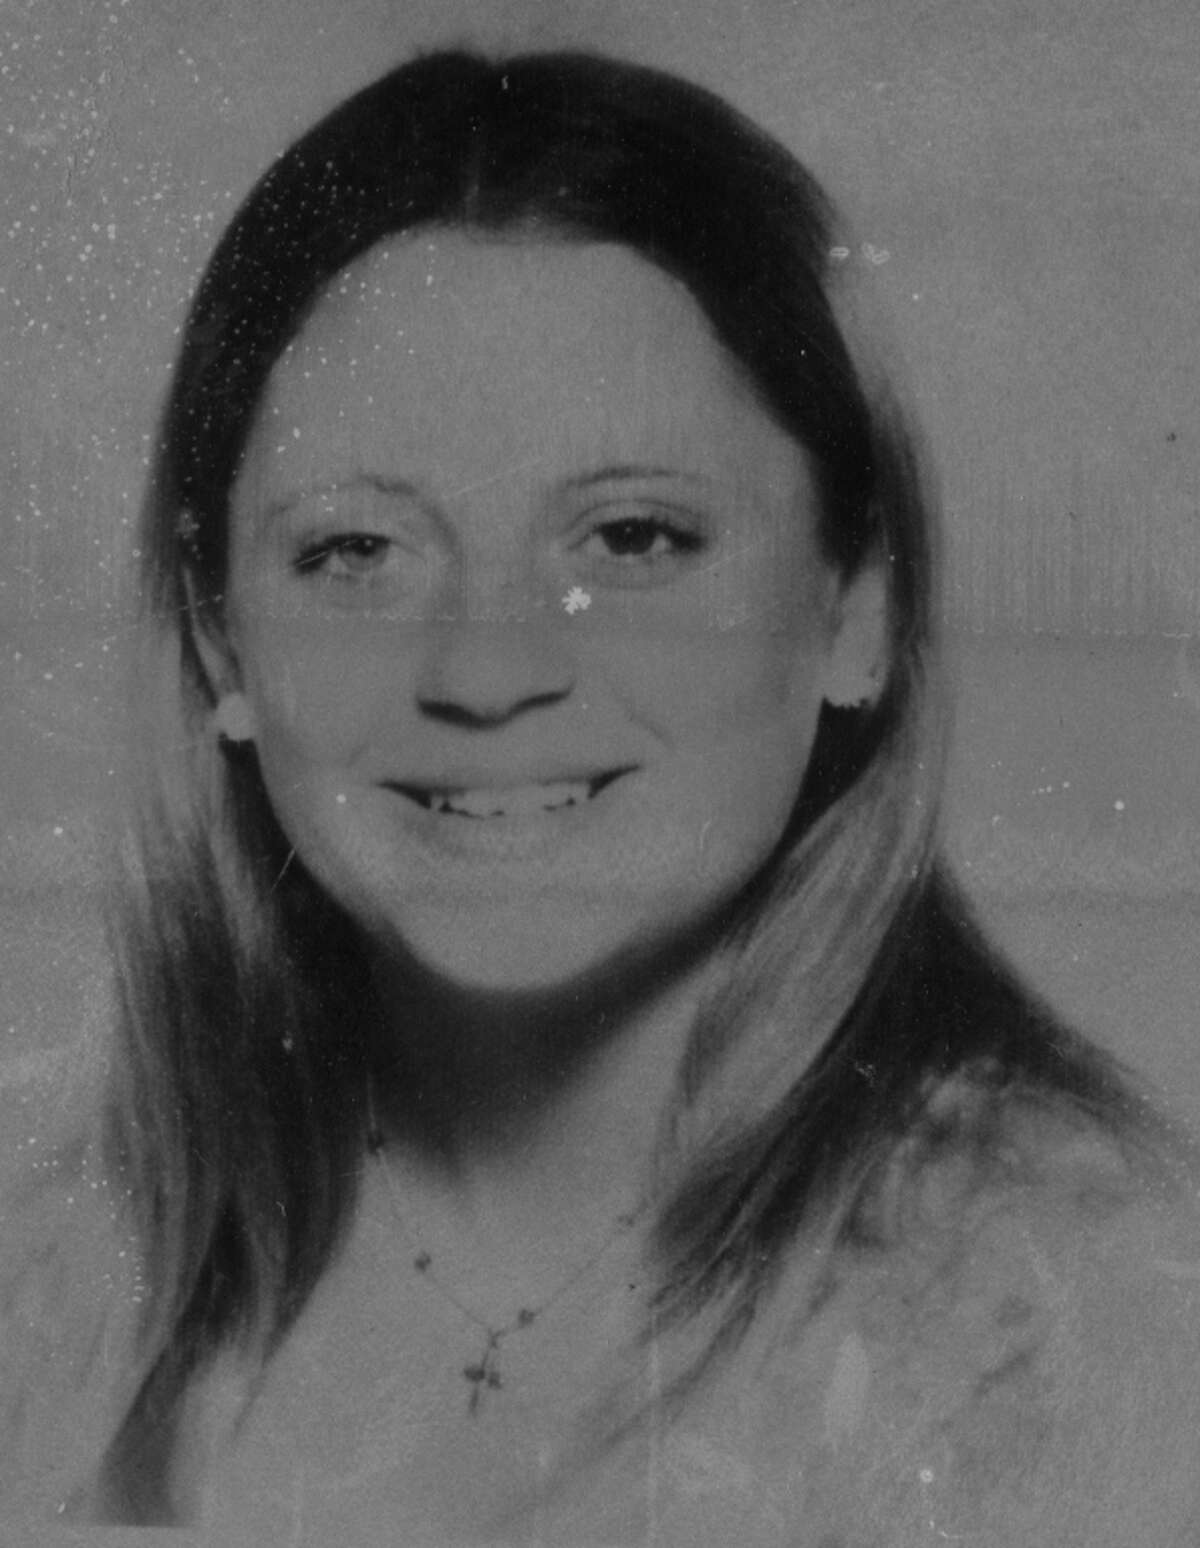 Debbie Ackerman, 15 The Galveston surfer girl and experienced water skier disappeared, along with Maria Johnson, after hitchhiking on Nov. 15, 1971. Their bodies were found in Turner Bayou three days later.